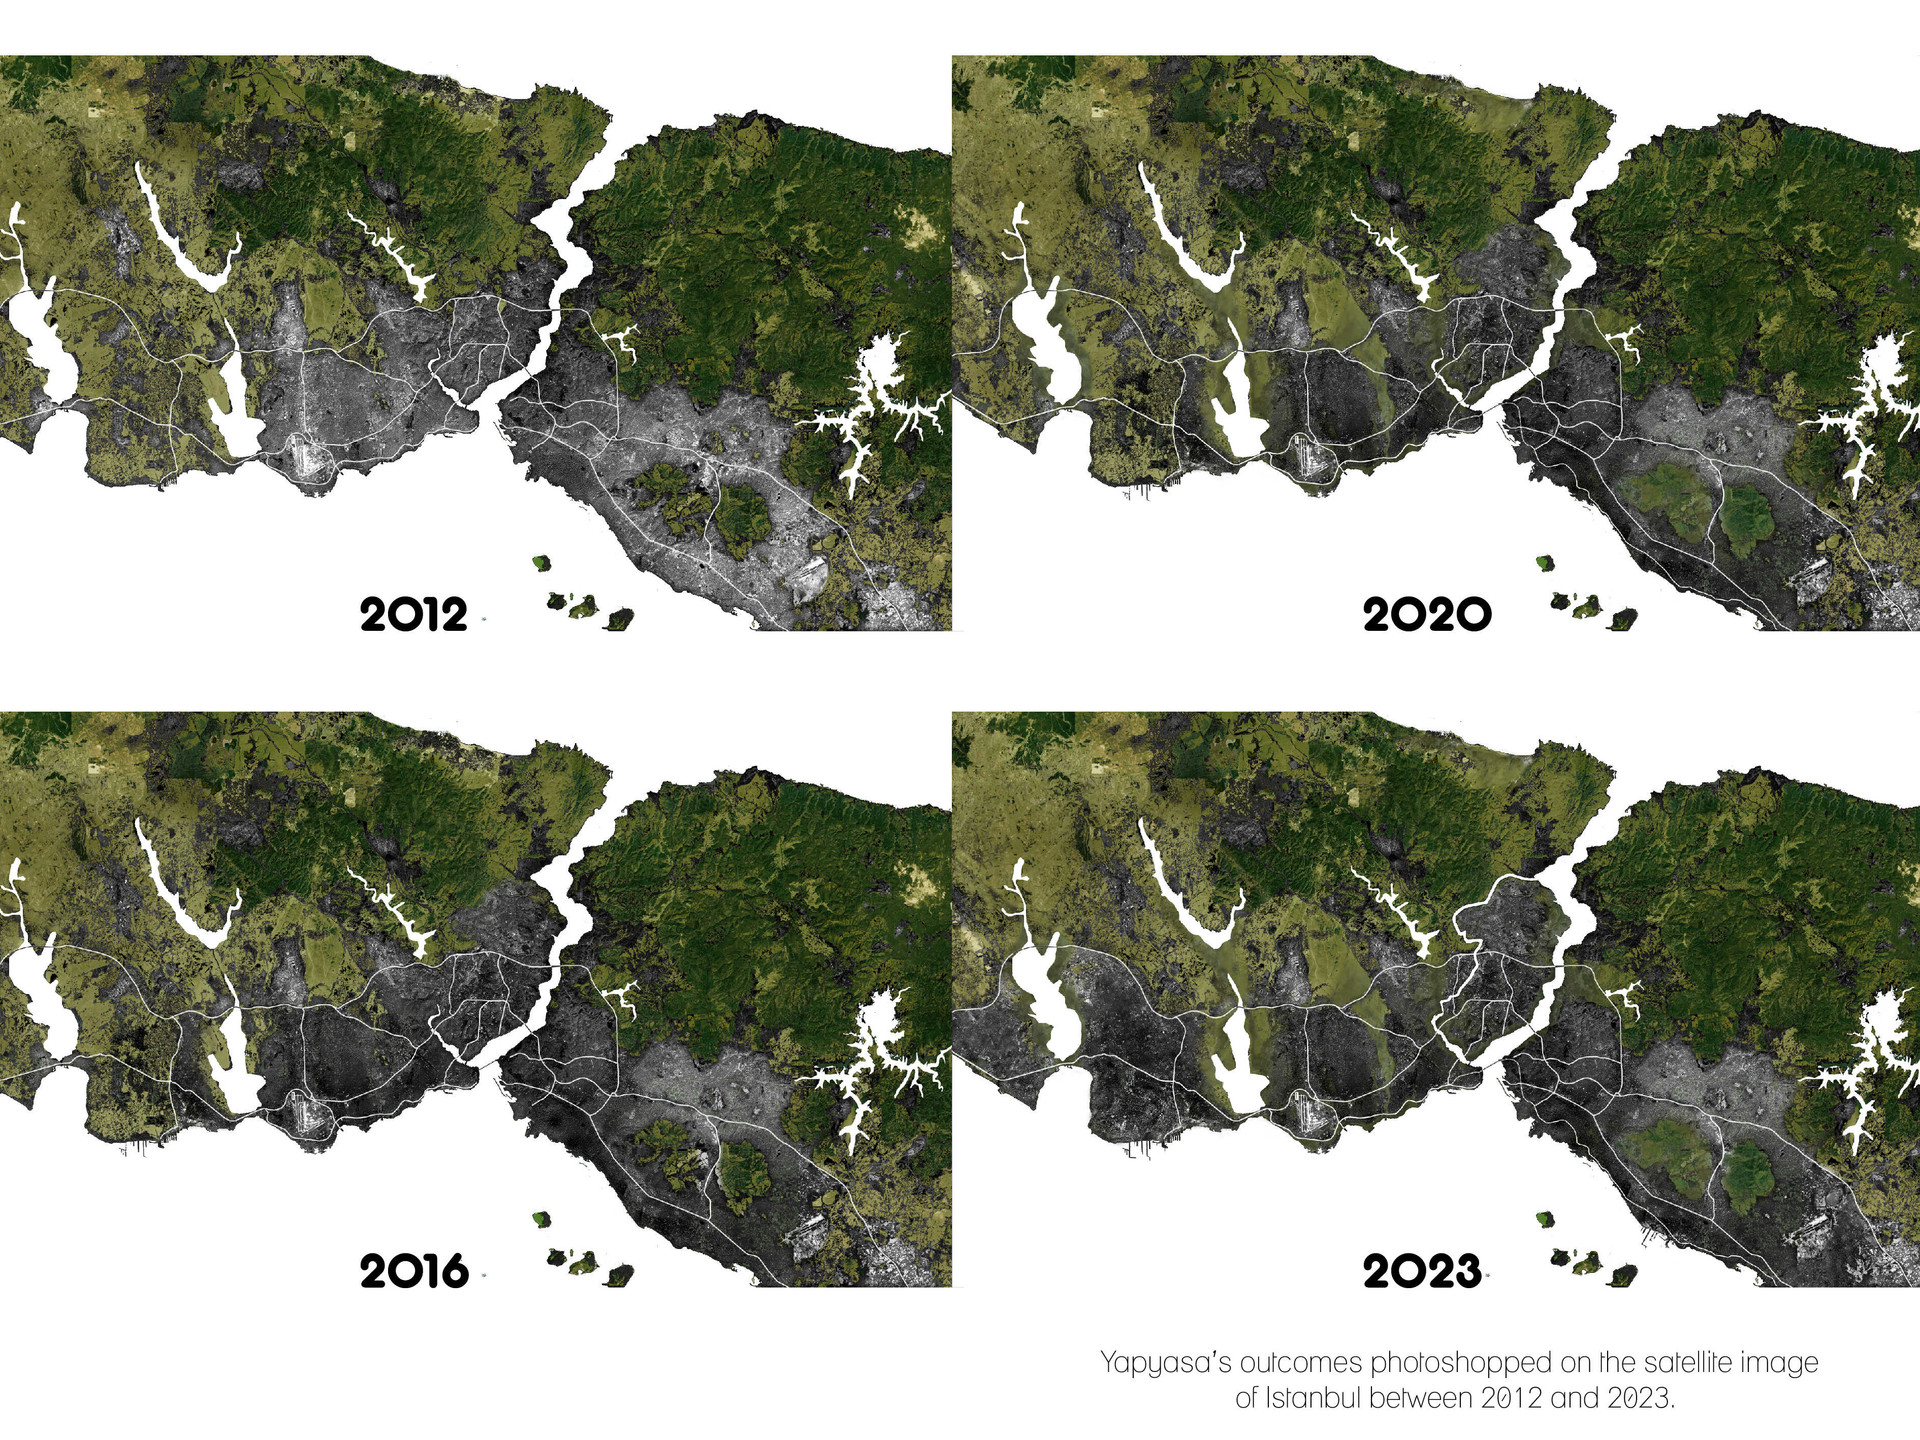 Yapyasa's outcomes photoshopped on the satellite image of Istanbul between 2012 and 2023. All rights reserved